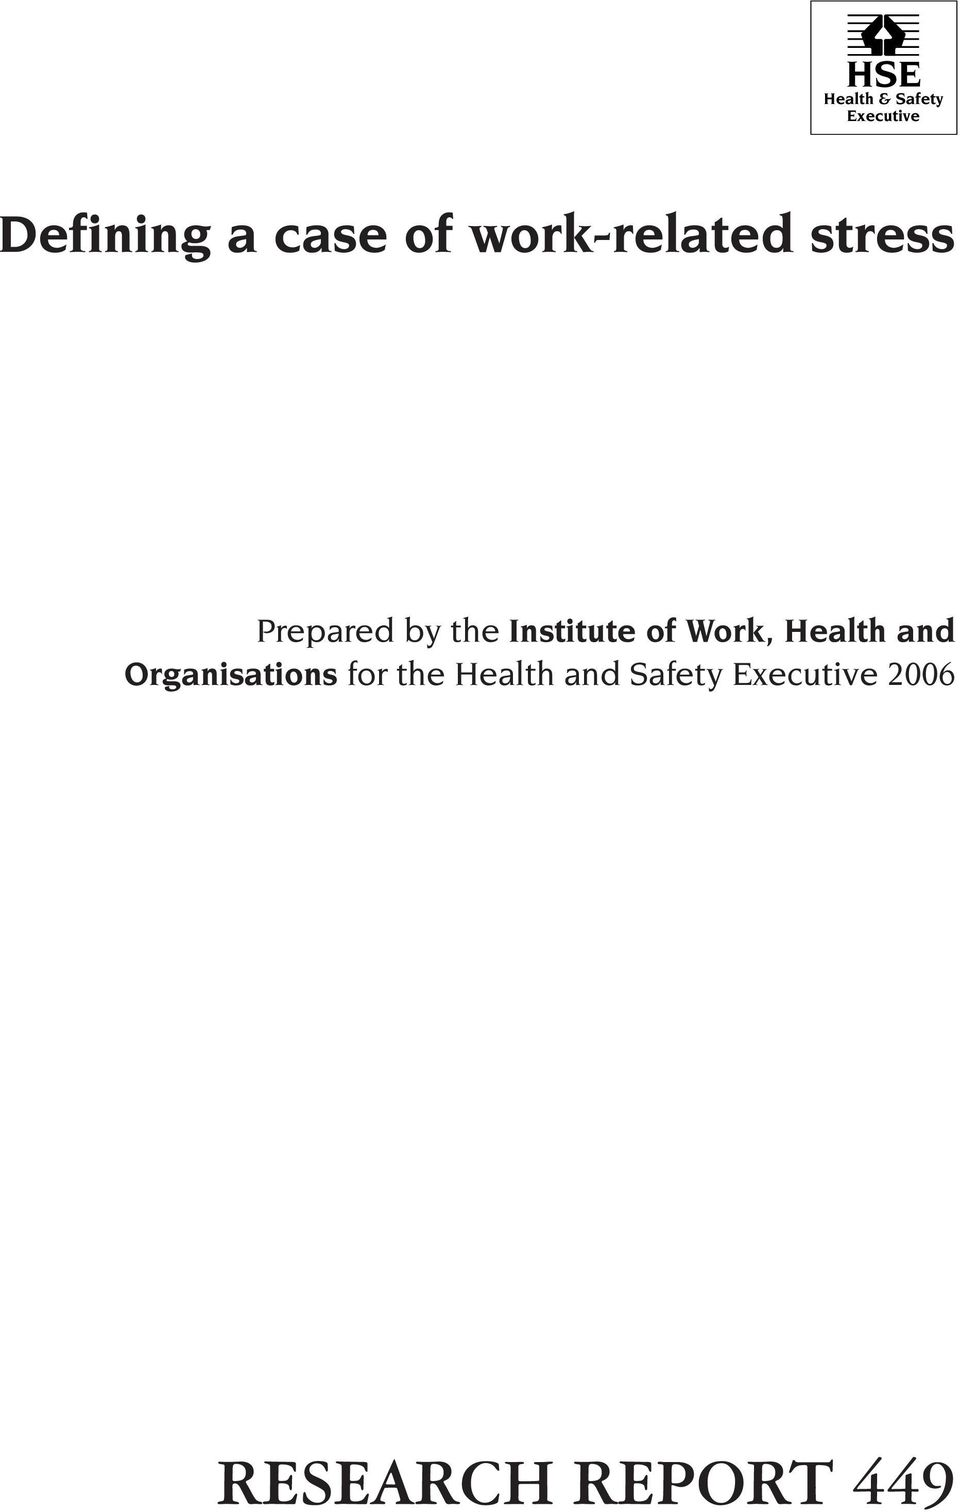 Institute of Work, Health and Organisations for